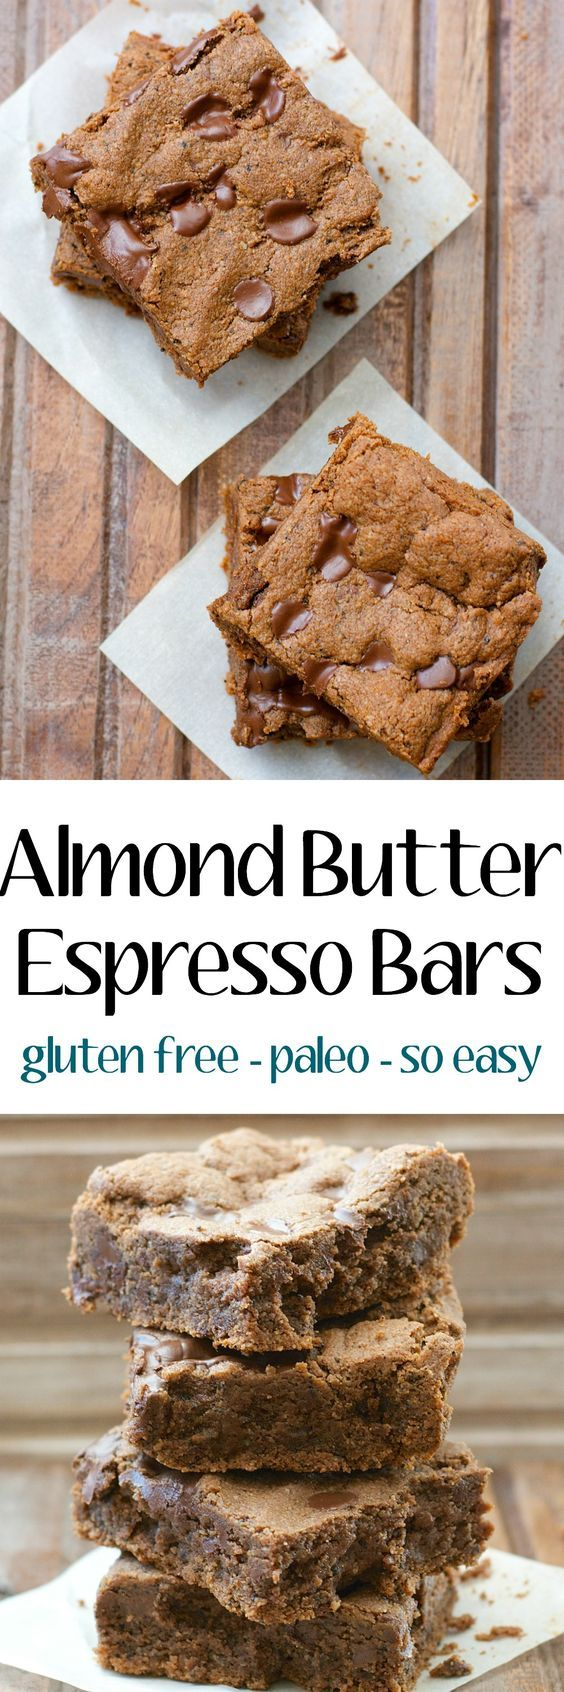 These Almond Butter Espresso Bars are packed with chocolate and coffee flavor! They are gluten free, paleo and ready in just 20 minutes! (Paleo Cookies Cocoa)